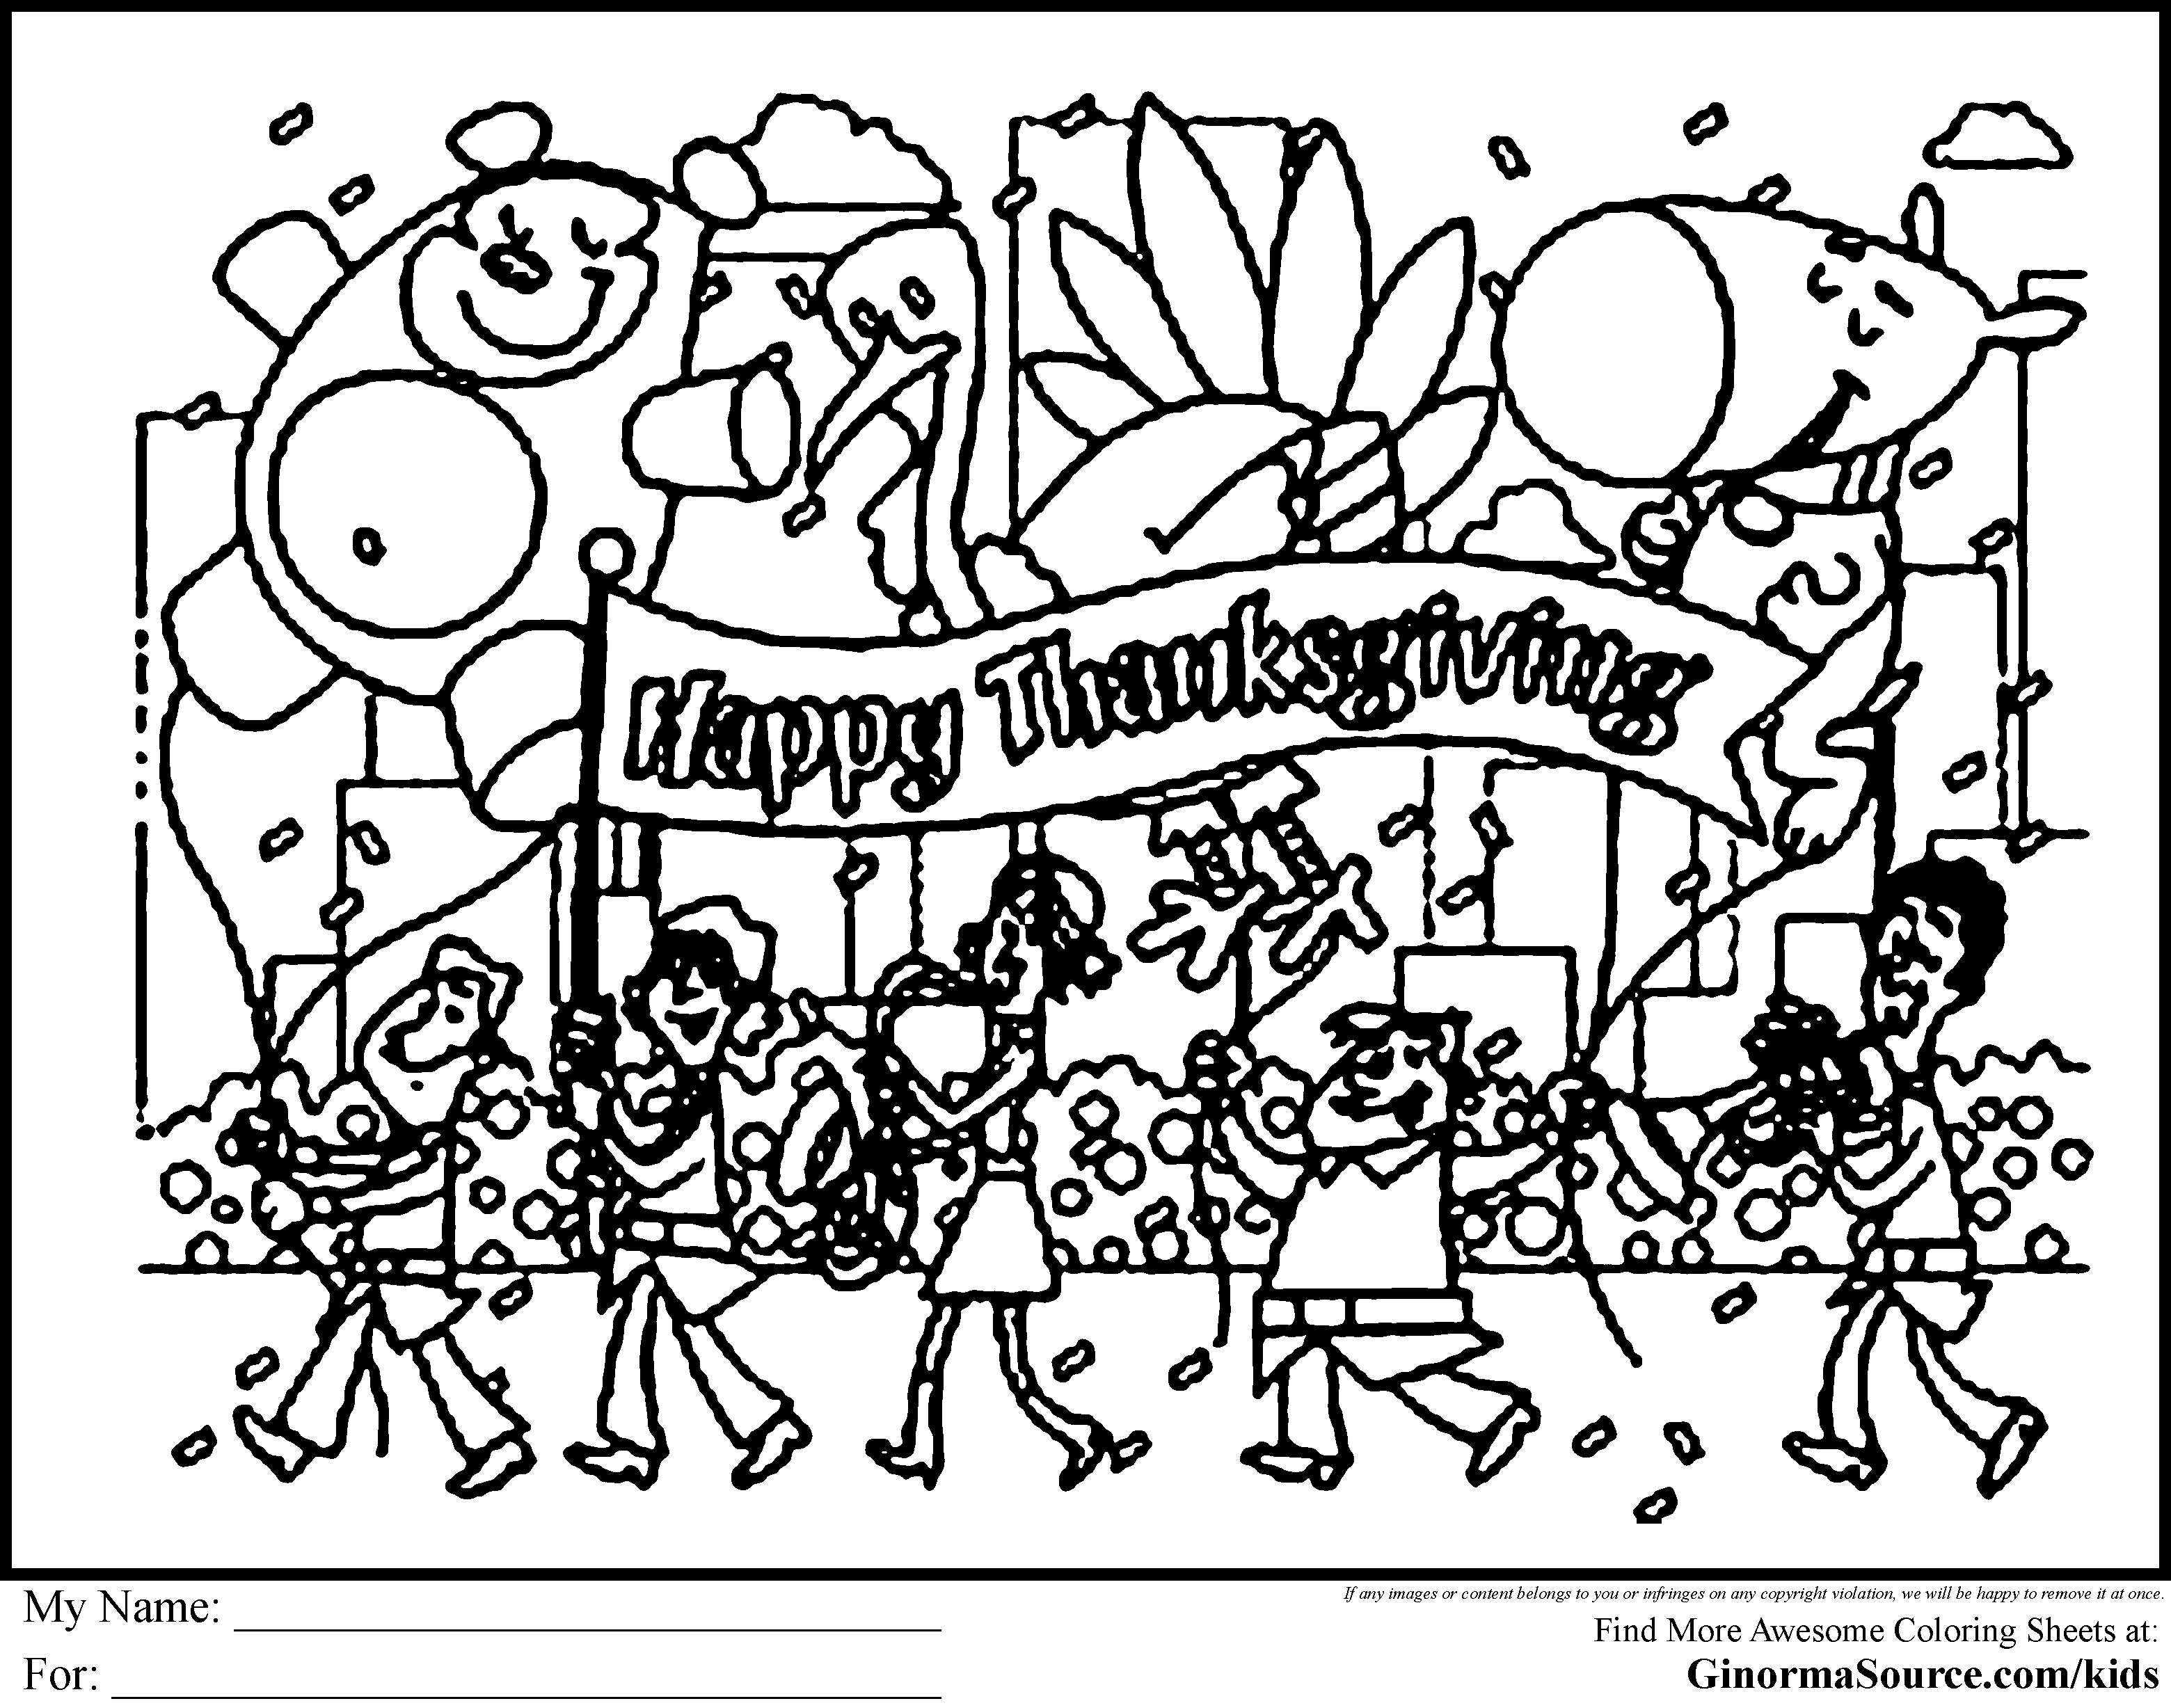 Coloring pages parade floats black white clipart transparent Christmas parade black and white clipart - Clip Art Library transparent